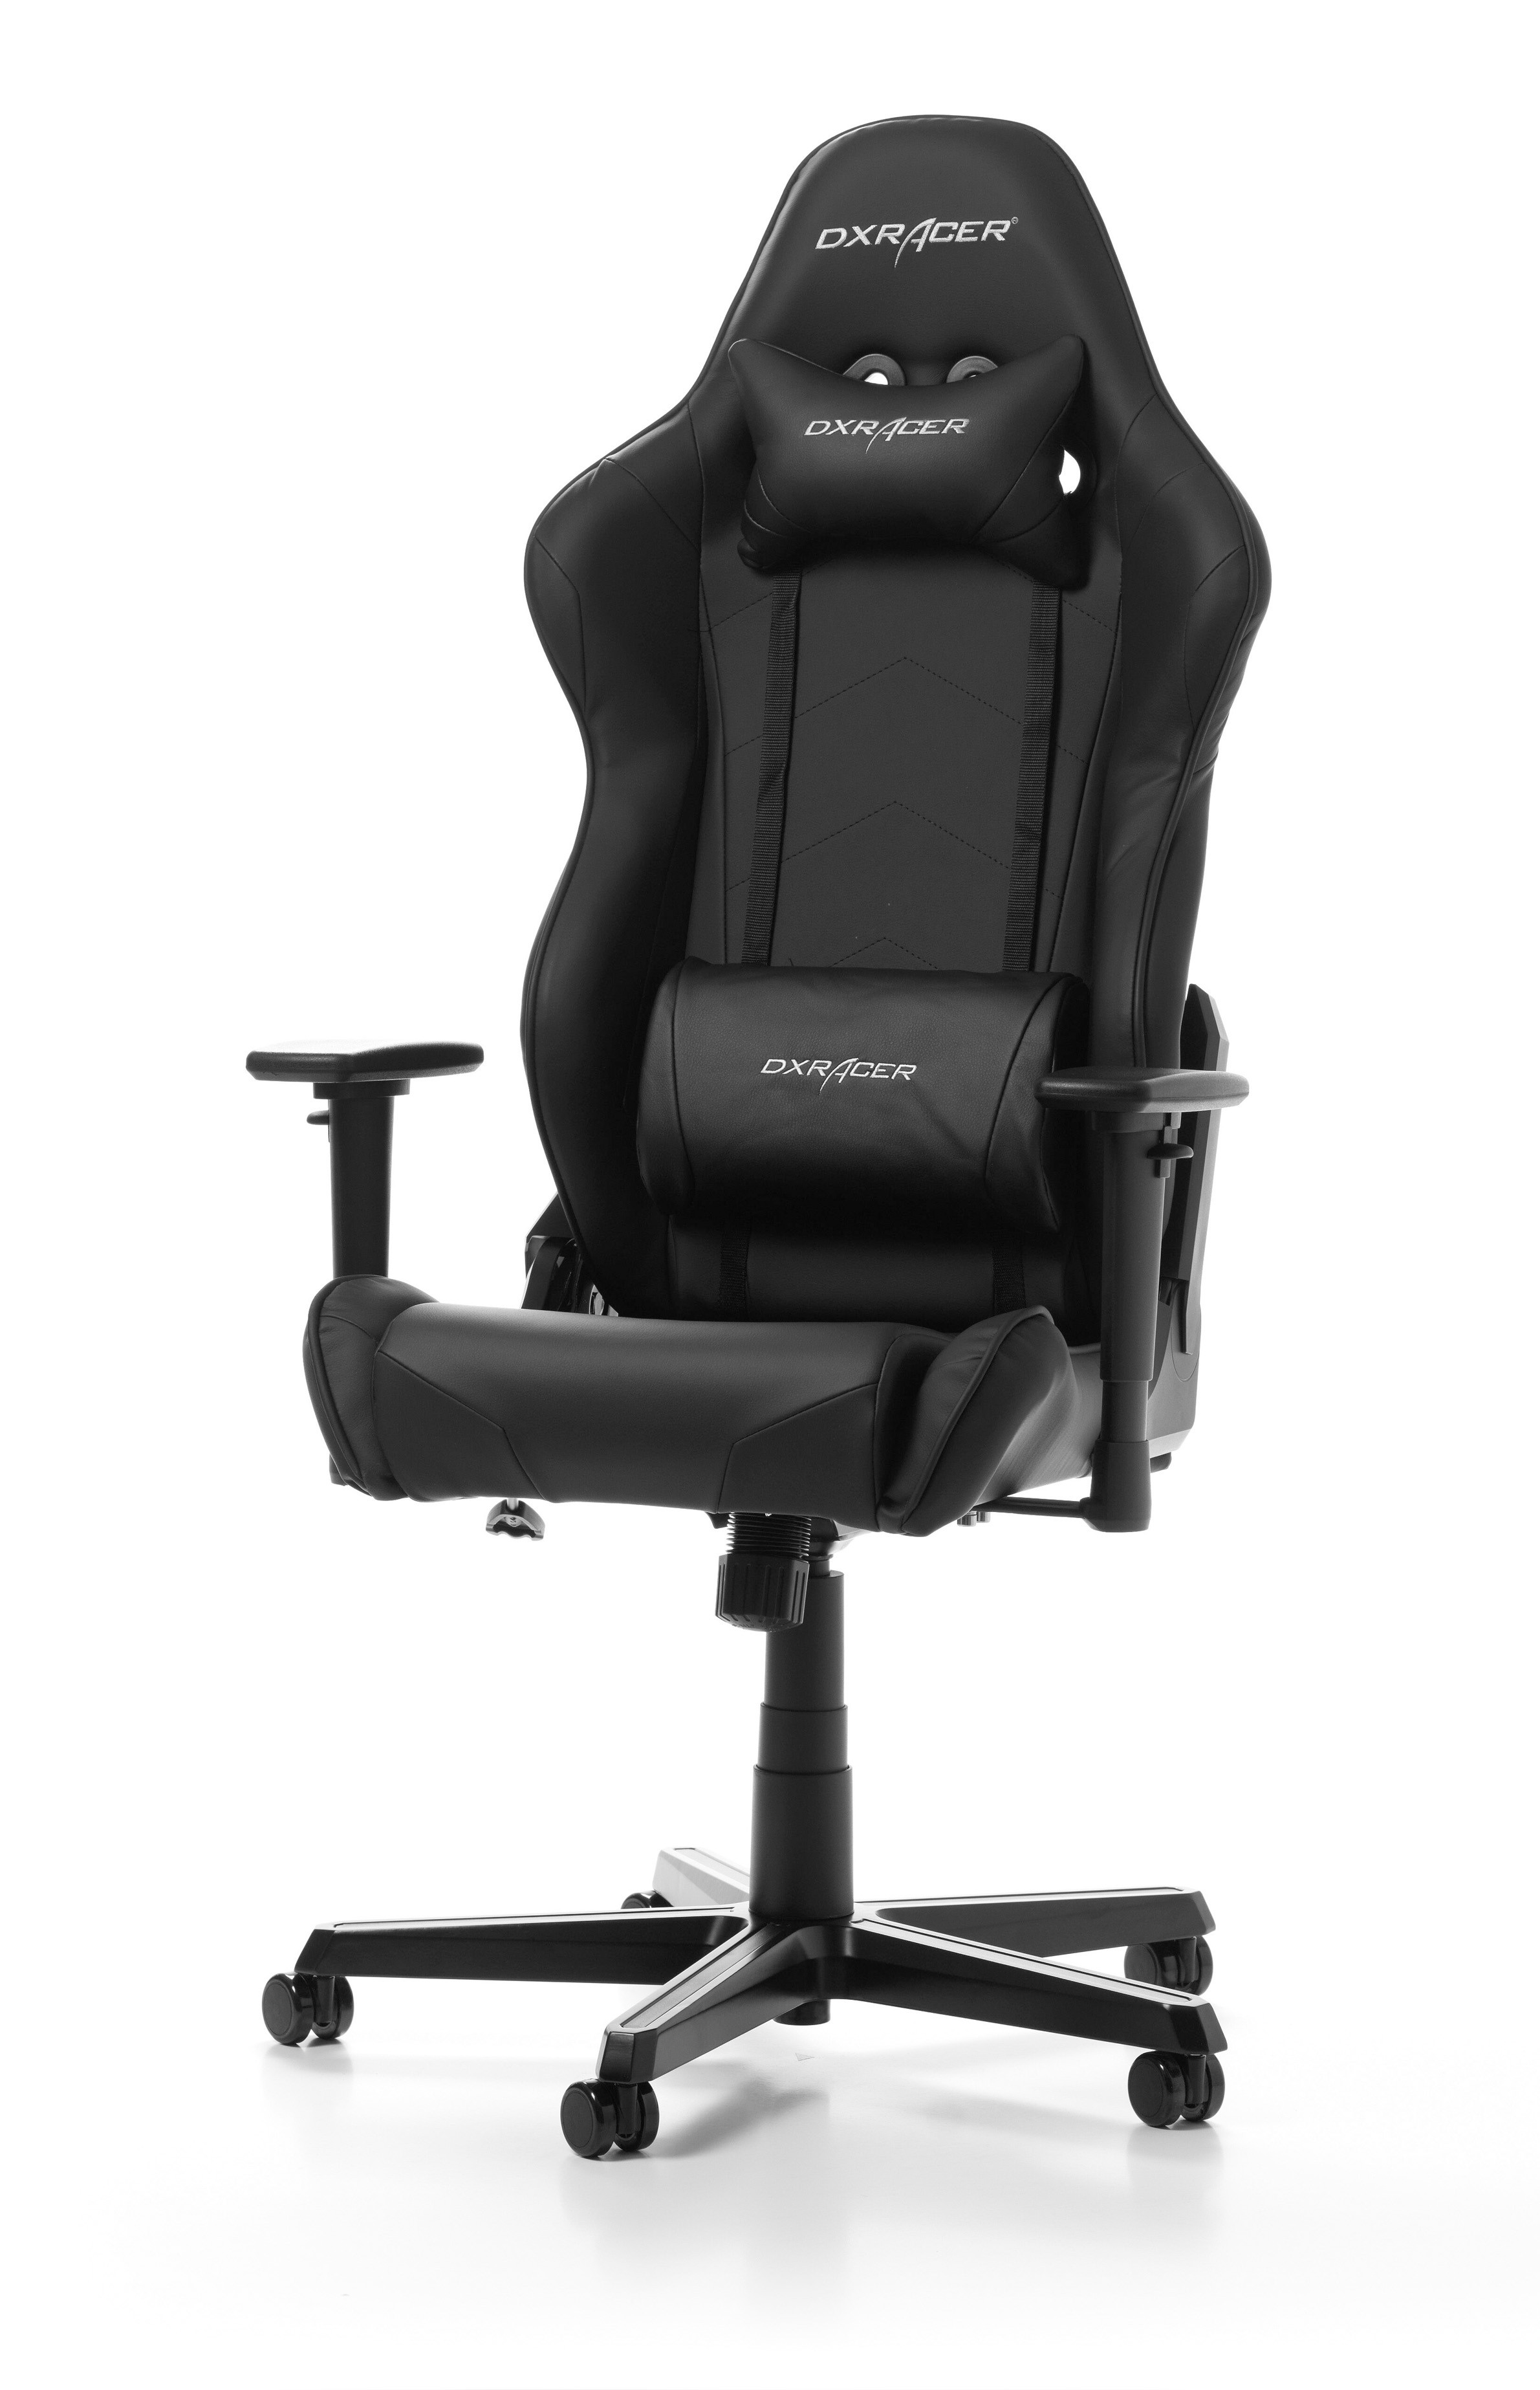 GAMING CHAIR DXRACER RACING SERIES R0-N BLACK